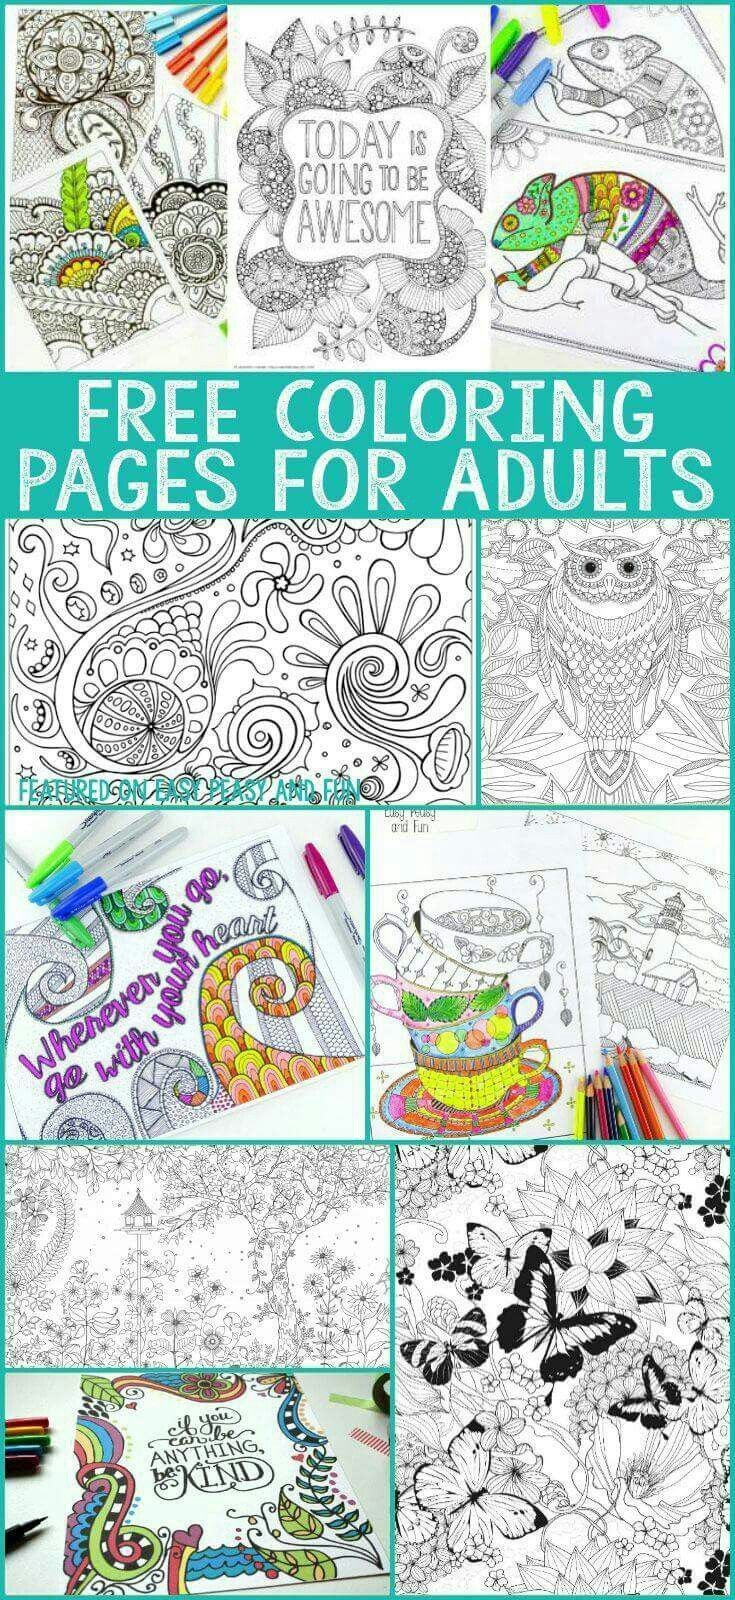 Free adult coloring pages | Color pages for adults | Pinterest ...